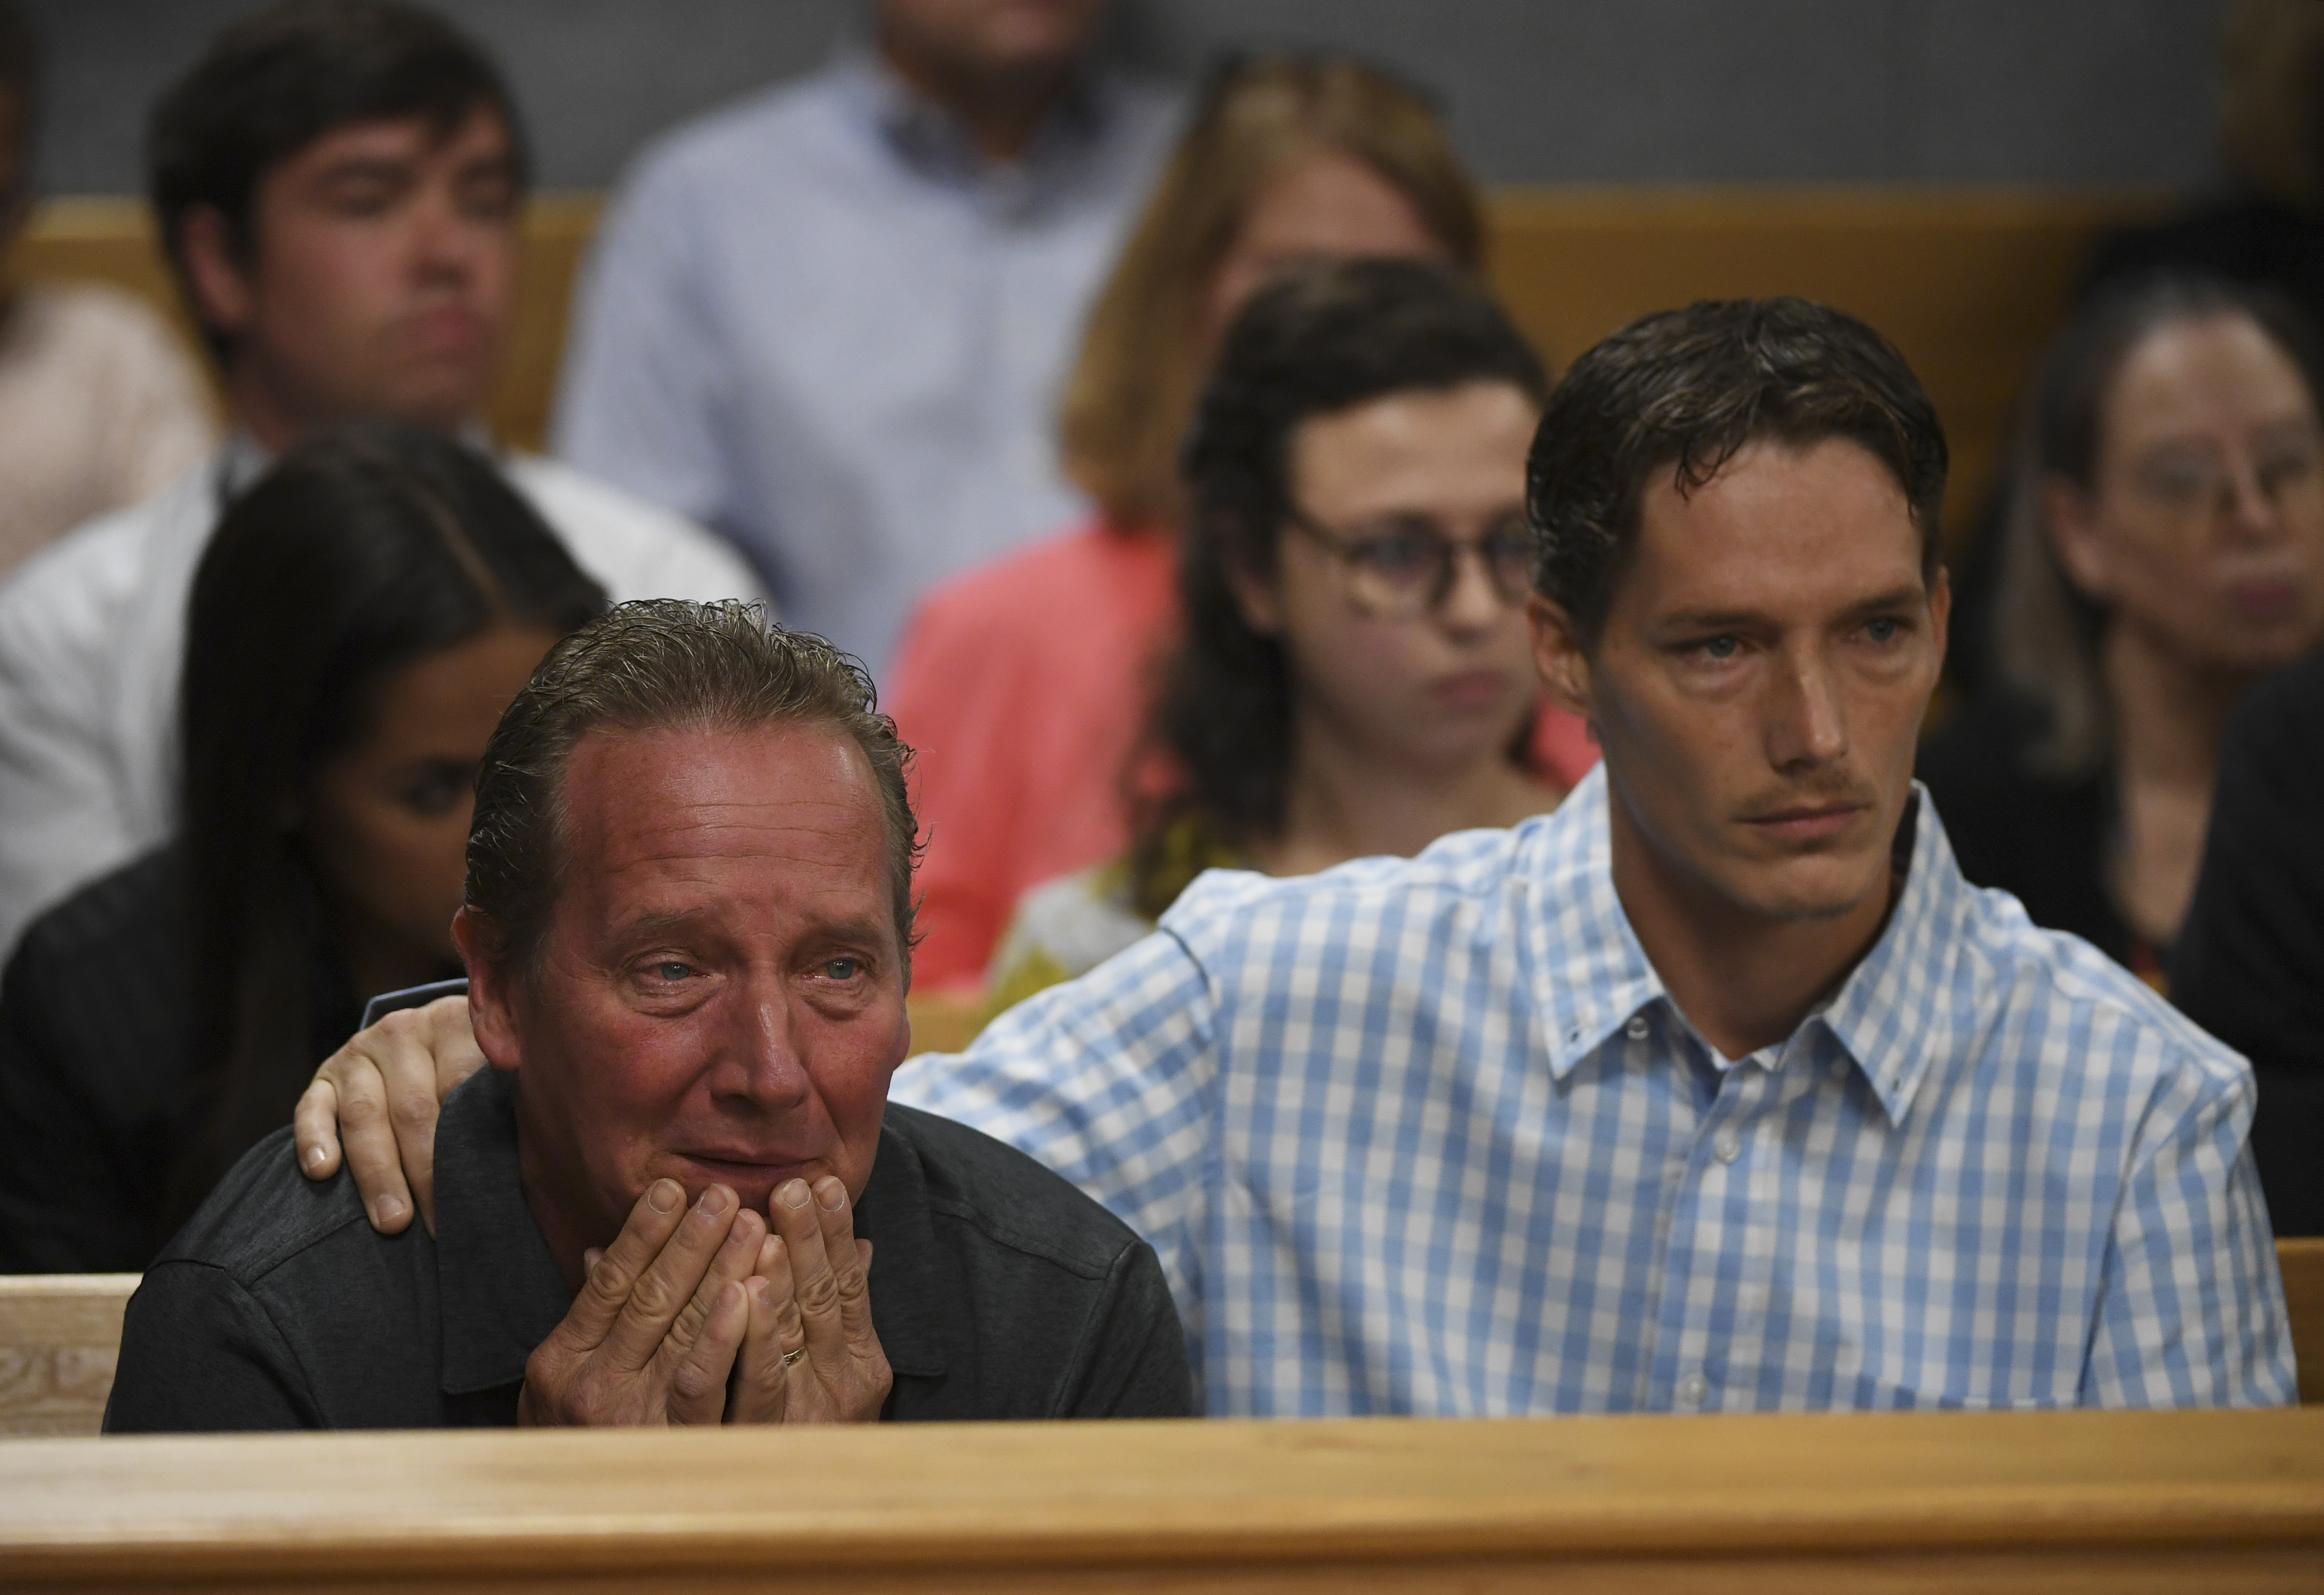 Frank Rzucek the father of Shanann Watts, left, and her brother Frankie Rzucek were in court for Christopher Watts arraignment hearing at the Weld County Courthouse on August 21, 2018 in Greeley, Colorado. Christopher Watts faces nine charges, including several counts of first-degree murder of his wife Shanann and his two young daughters, 4-year-old Bella, and 3-year-old Celeste.